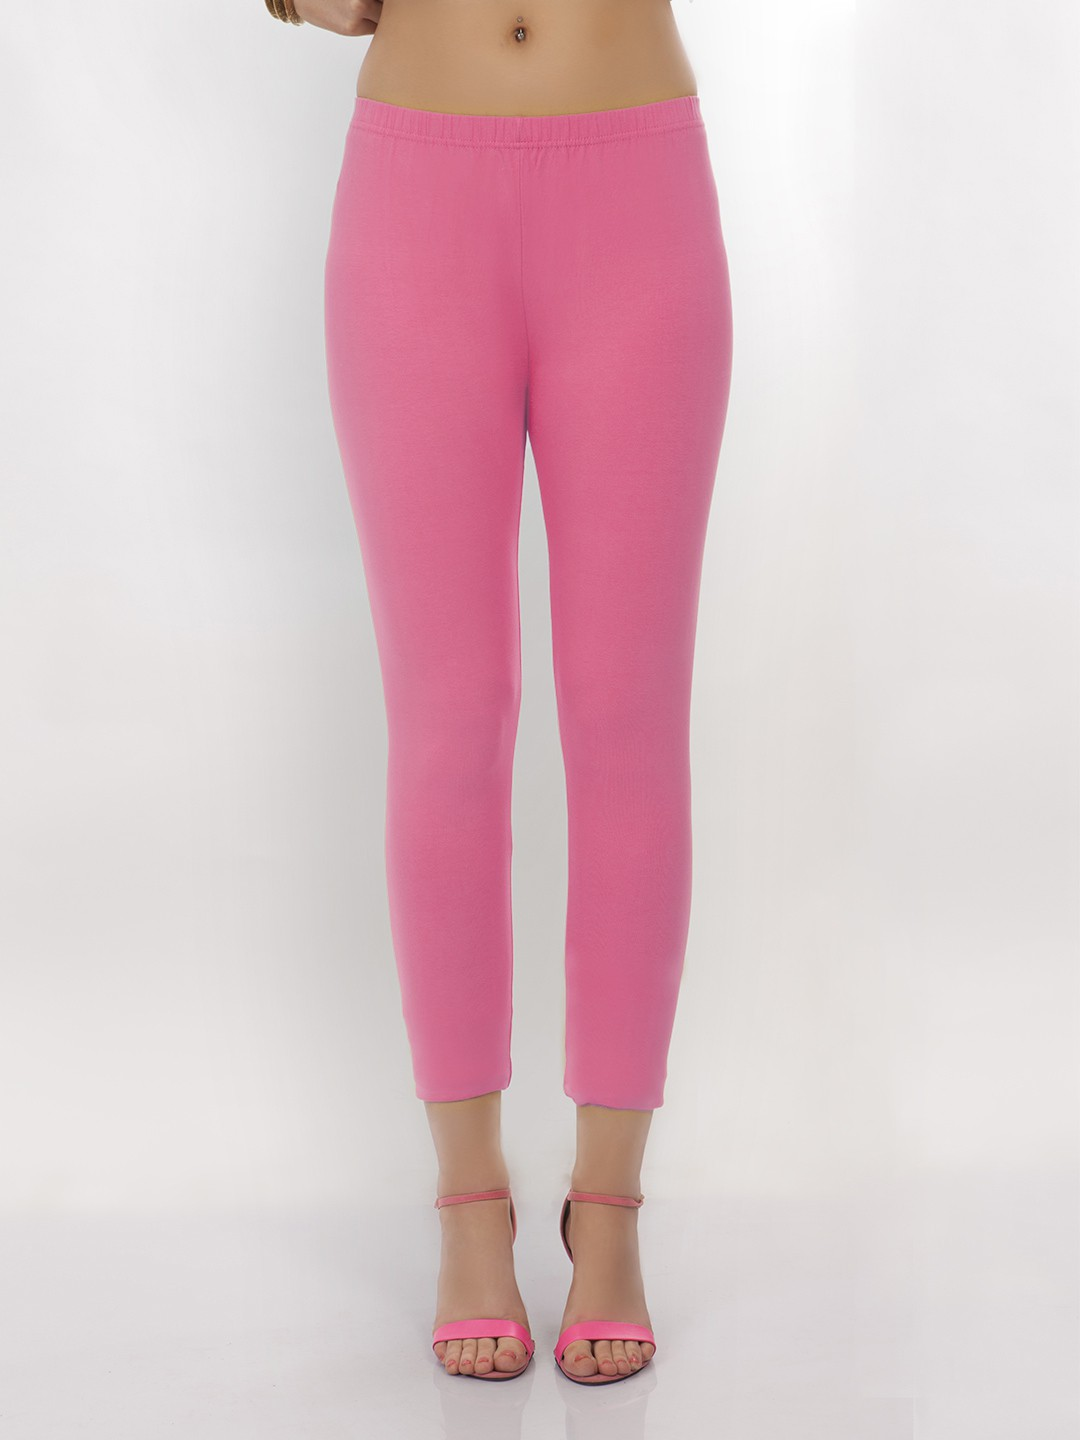 Sonari Womens Pink Leggings